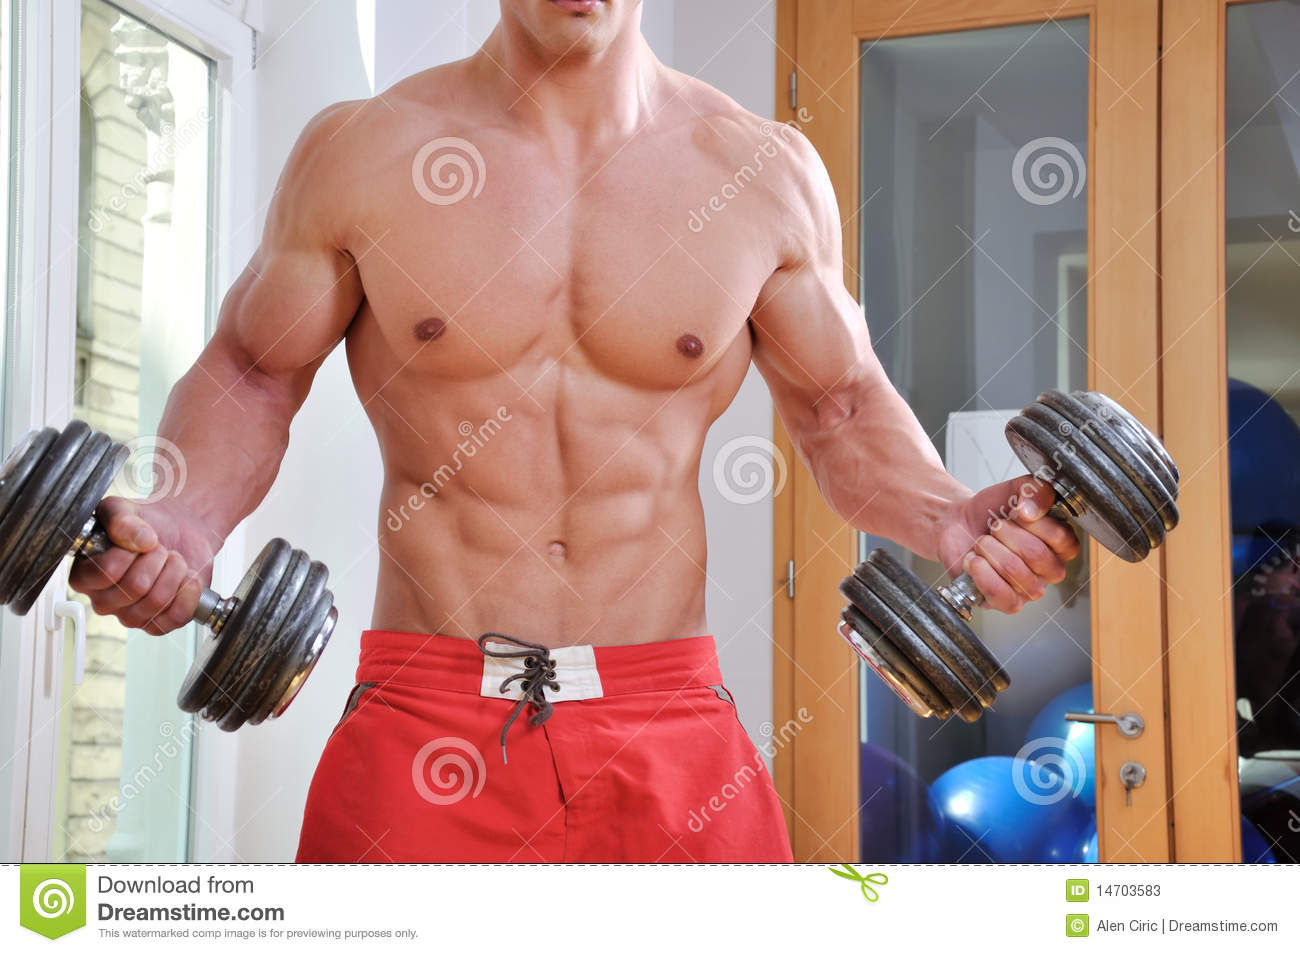 Homme musculaire puissant